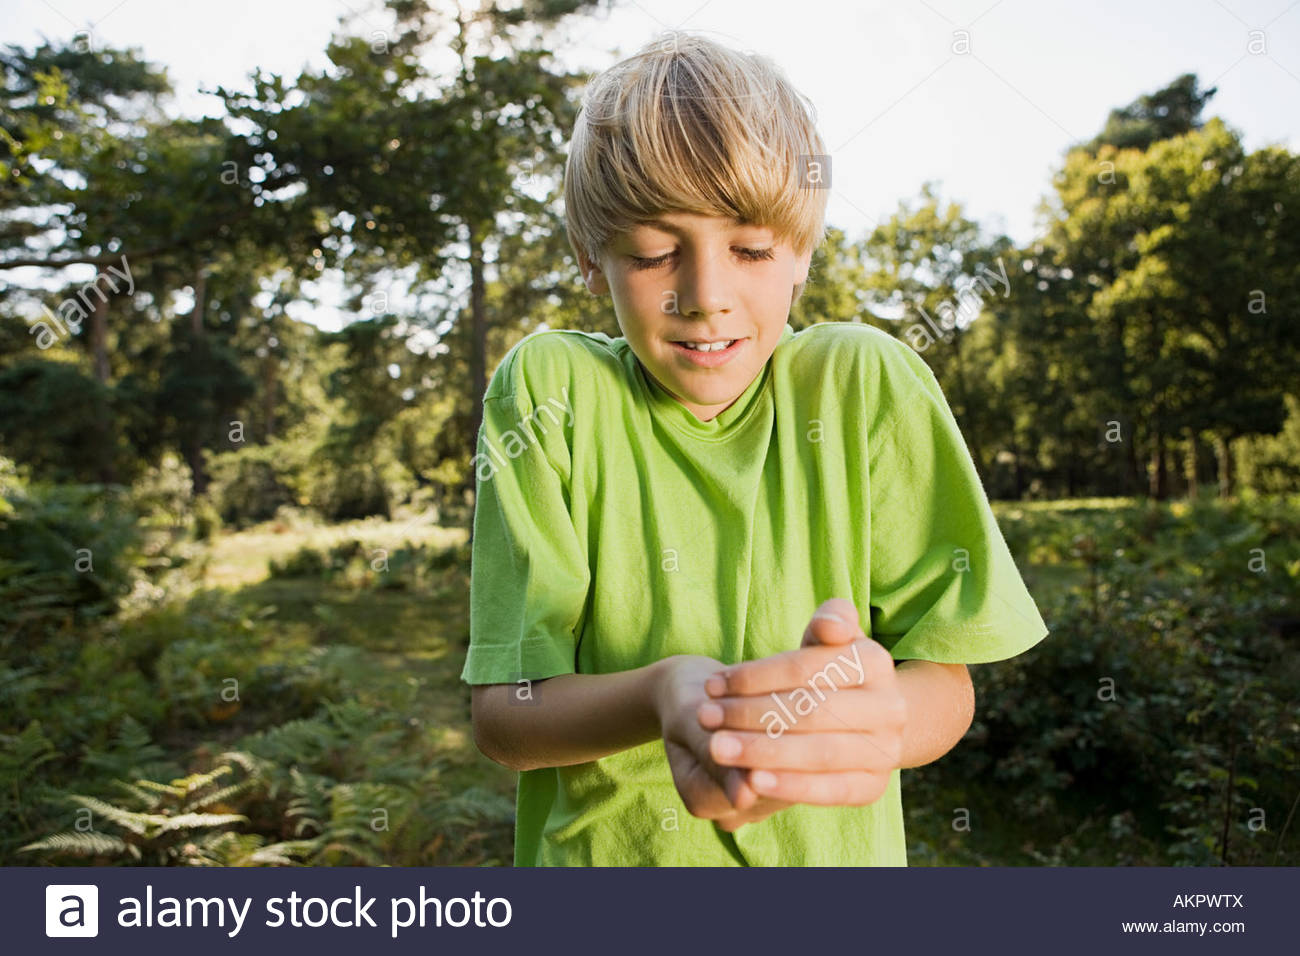 Boy holding something in his hands - Stock Image